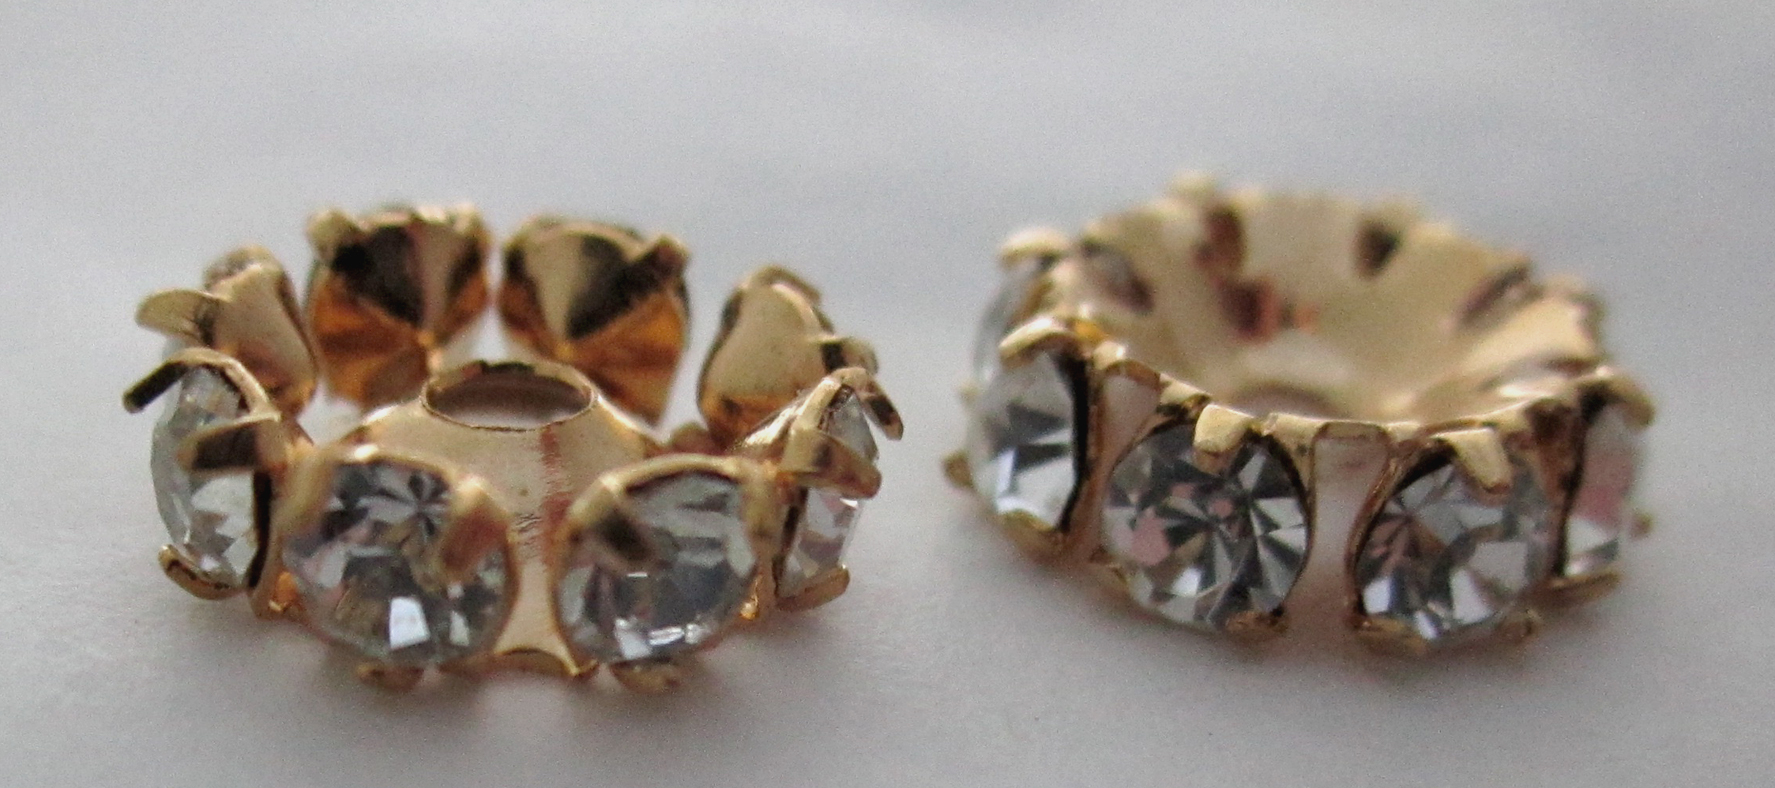 6 pcs. MCC machine cut crystal gold tone plated rhinestone rondelle beads 9mm - s283